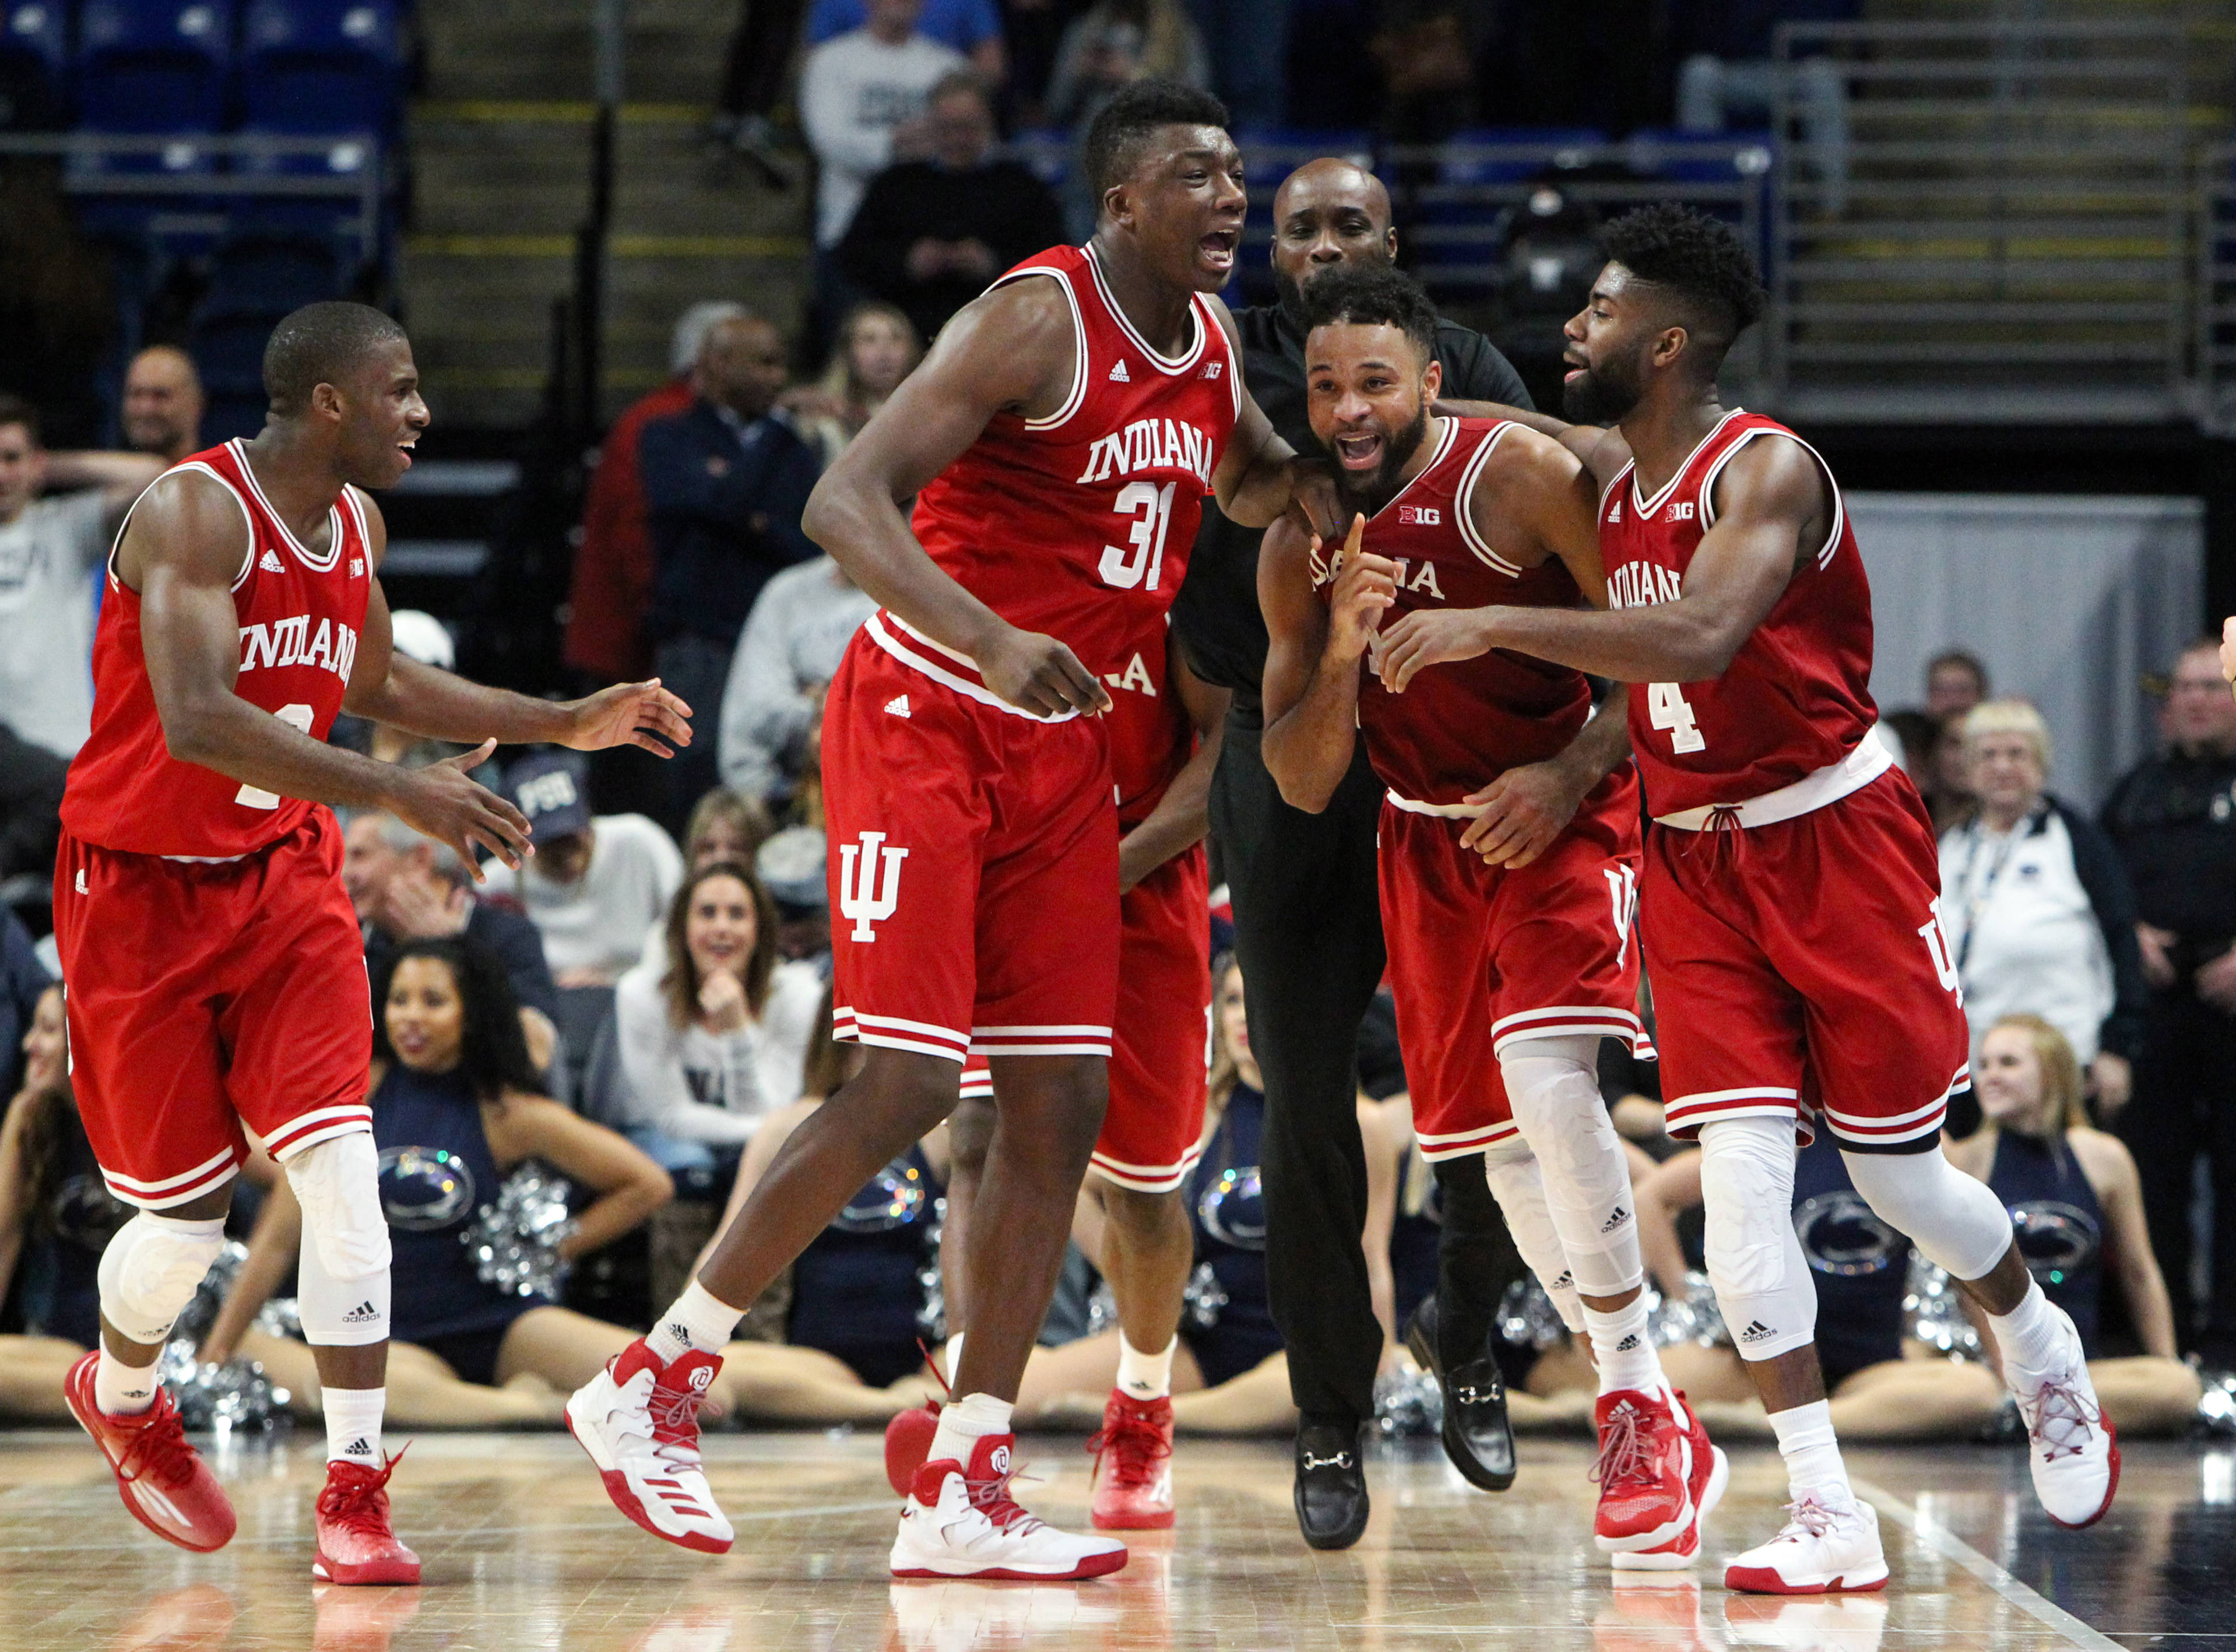 Jan 18, 2017; University Park, PA, USA; Indiana Hoosiers guard James Blackmon Jr (second from right) celebrates with teammates after scoring the winning shot during the second half against the Penn State Nittany Lions at Bryce Jordan Center. Indiana defeated Penn State 78-75. Mandatory Credit: Matthew O'Haren-USA TODAY Sports